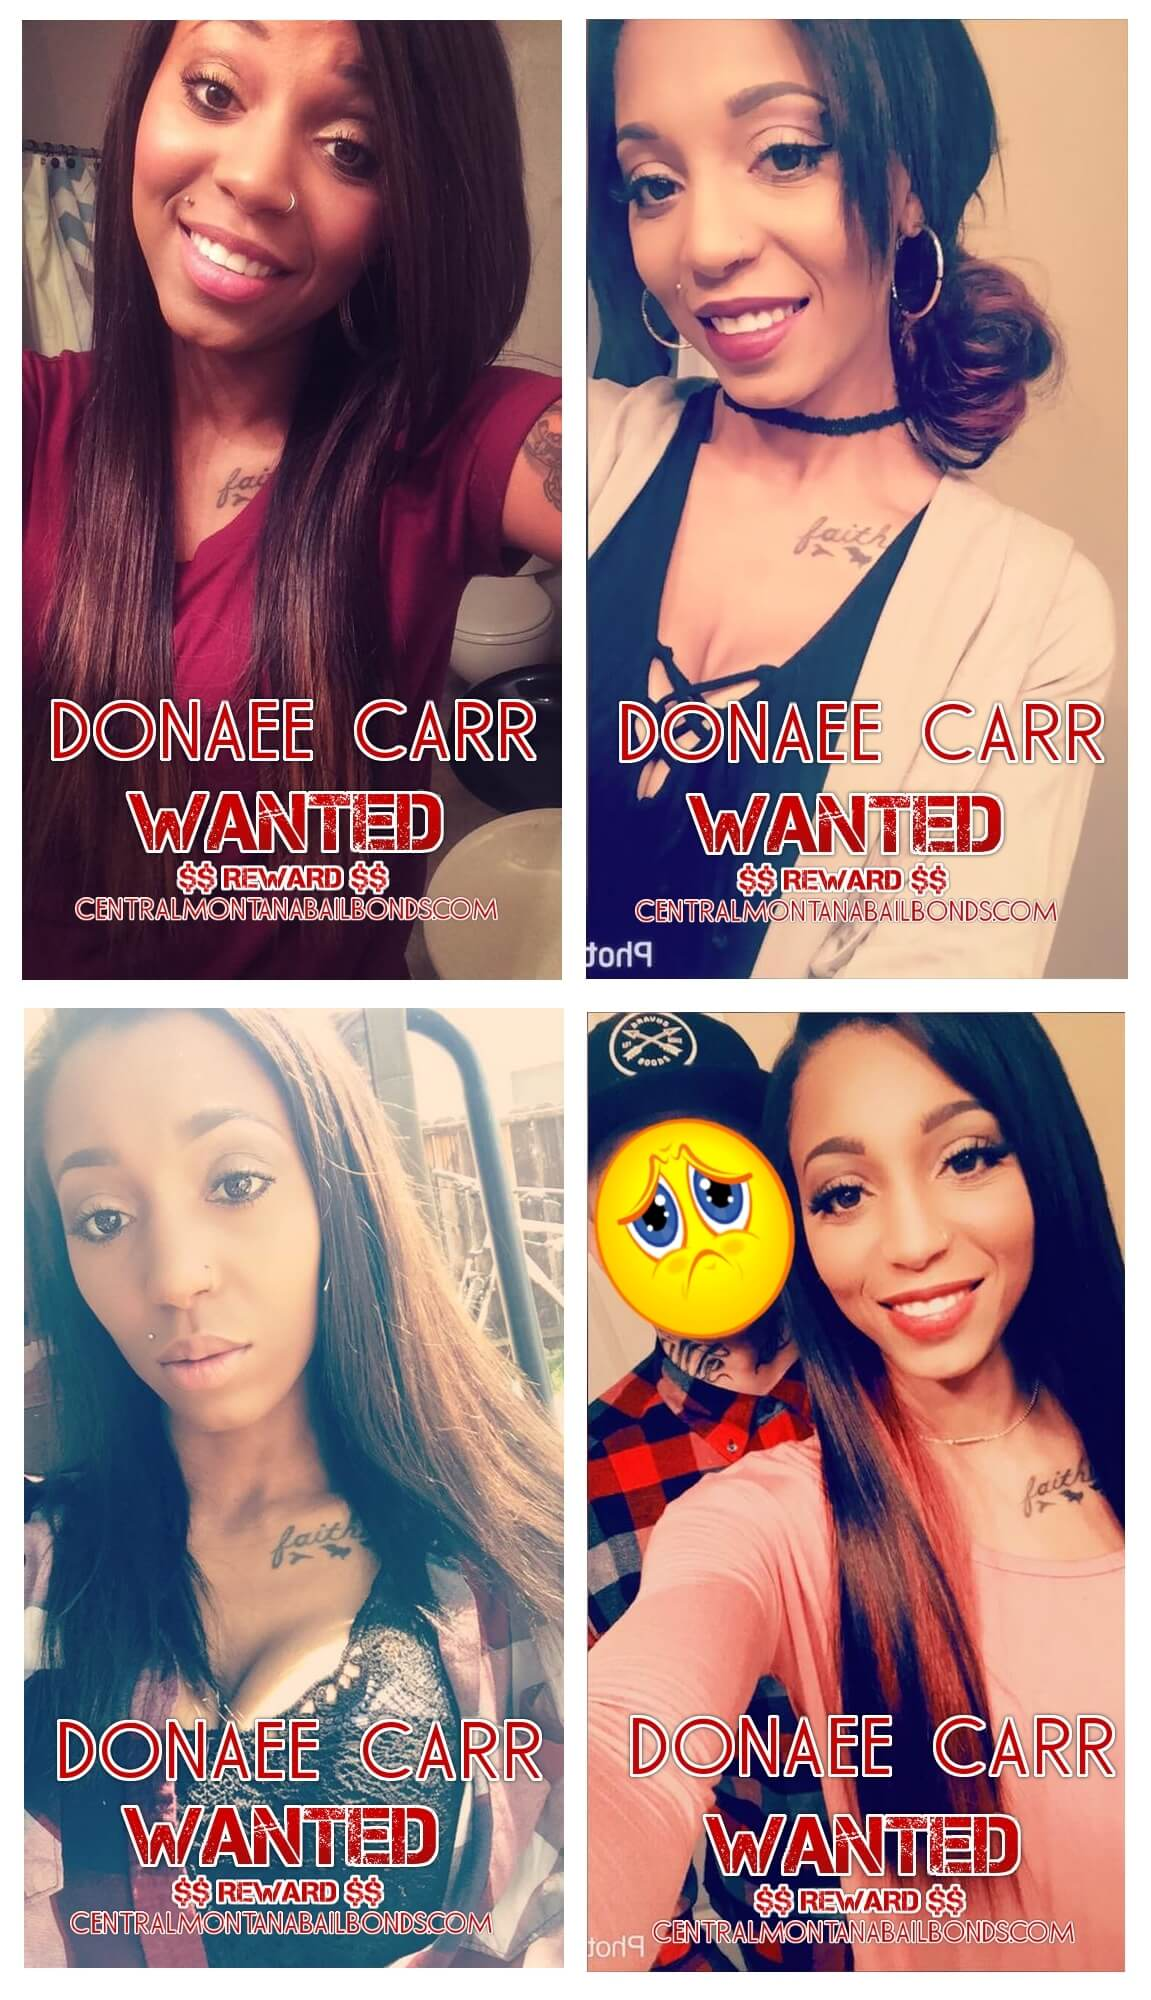 Donaee Carr Wanted Billings